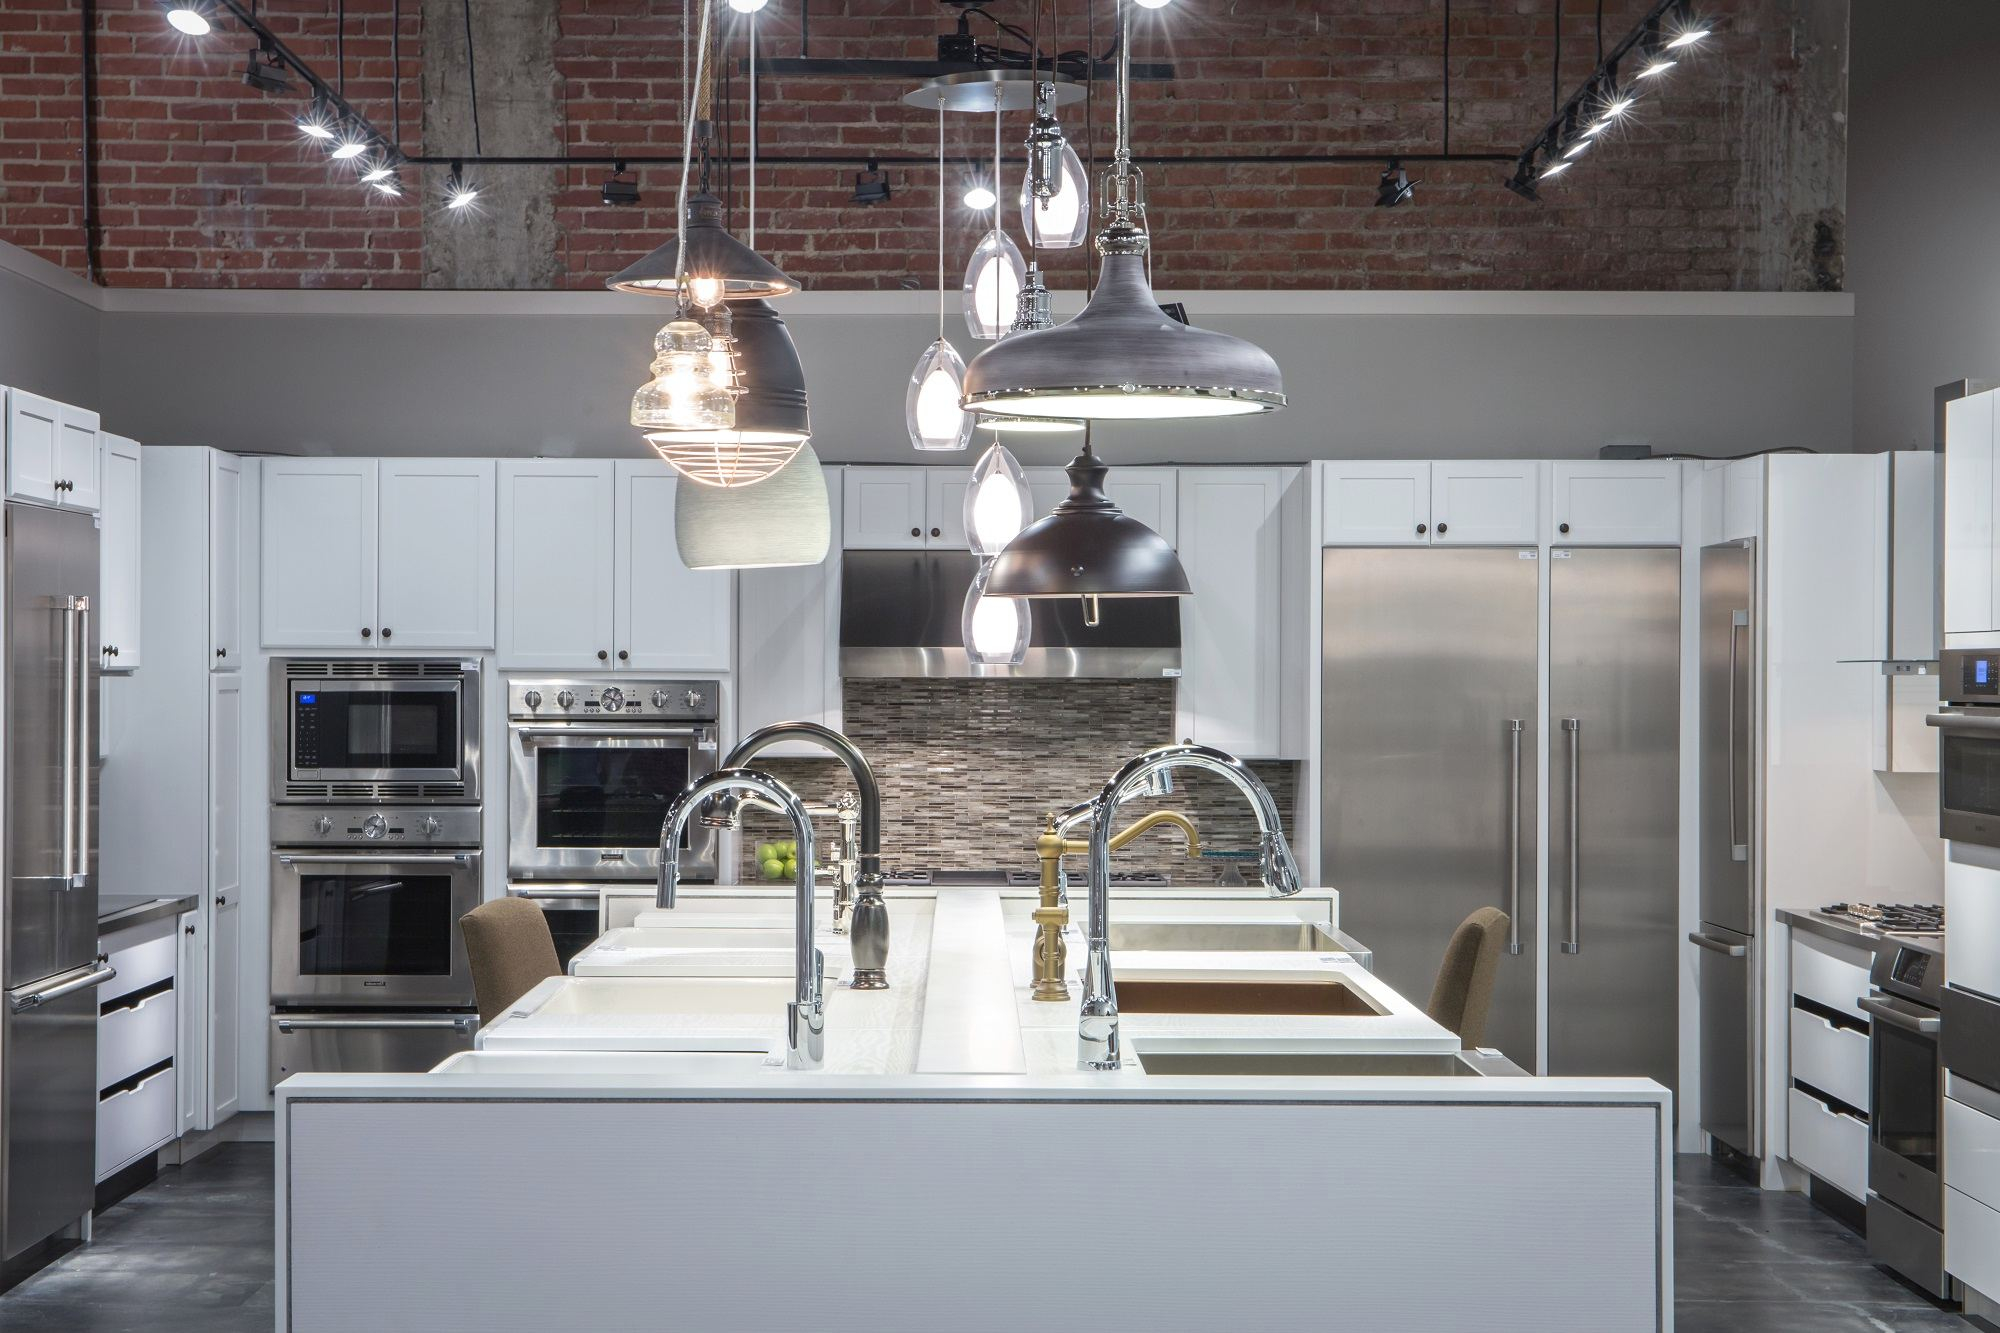 Cool Ferguson Bath, Kitchen & Lighting Gallery Expands In Seattle regarding Set Ferguson Bath Kitchen And Lighting Gallery